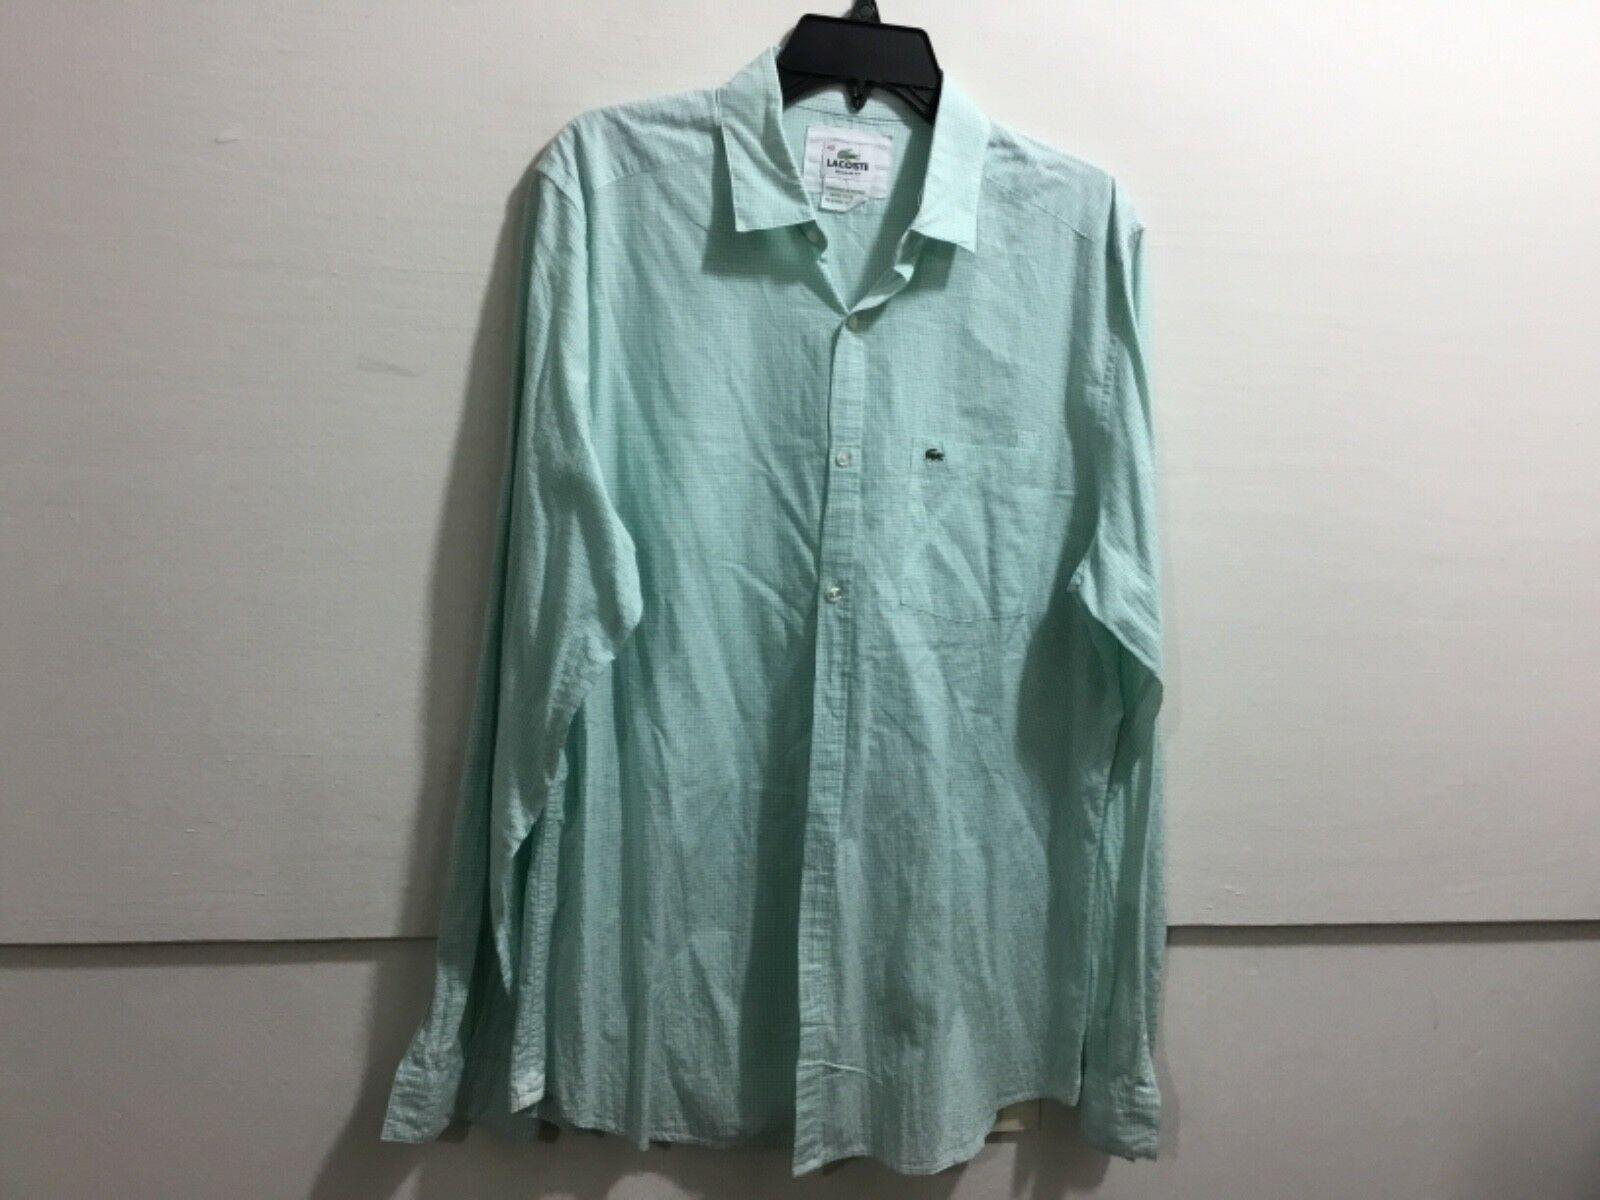 899a2623 Lacoste 40 M button down long sleeve shirt size Men's nnanyk1067-Casual  Button-Down Shirts